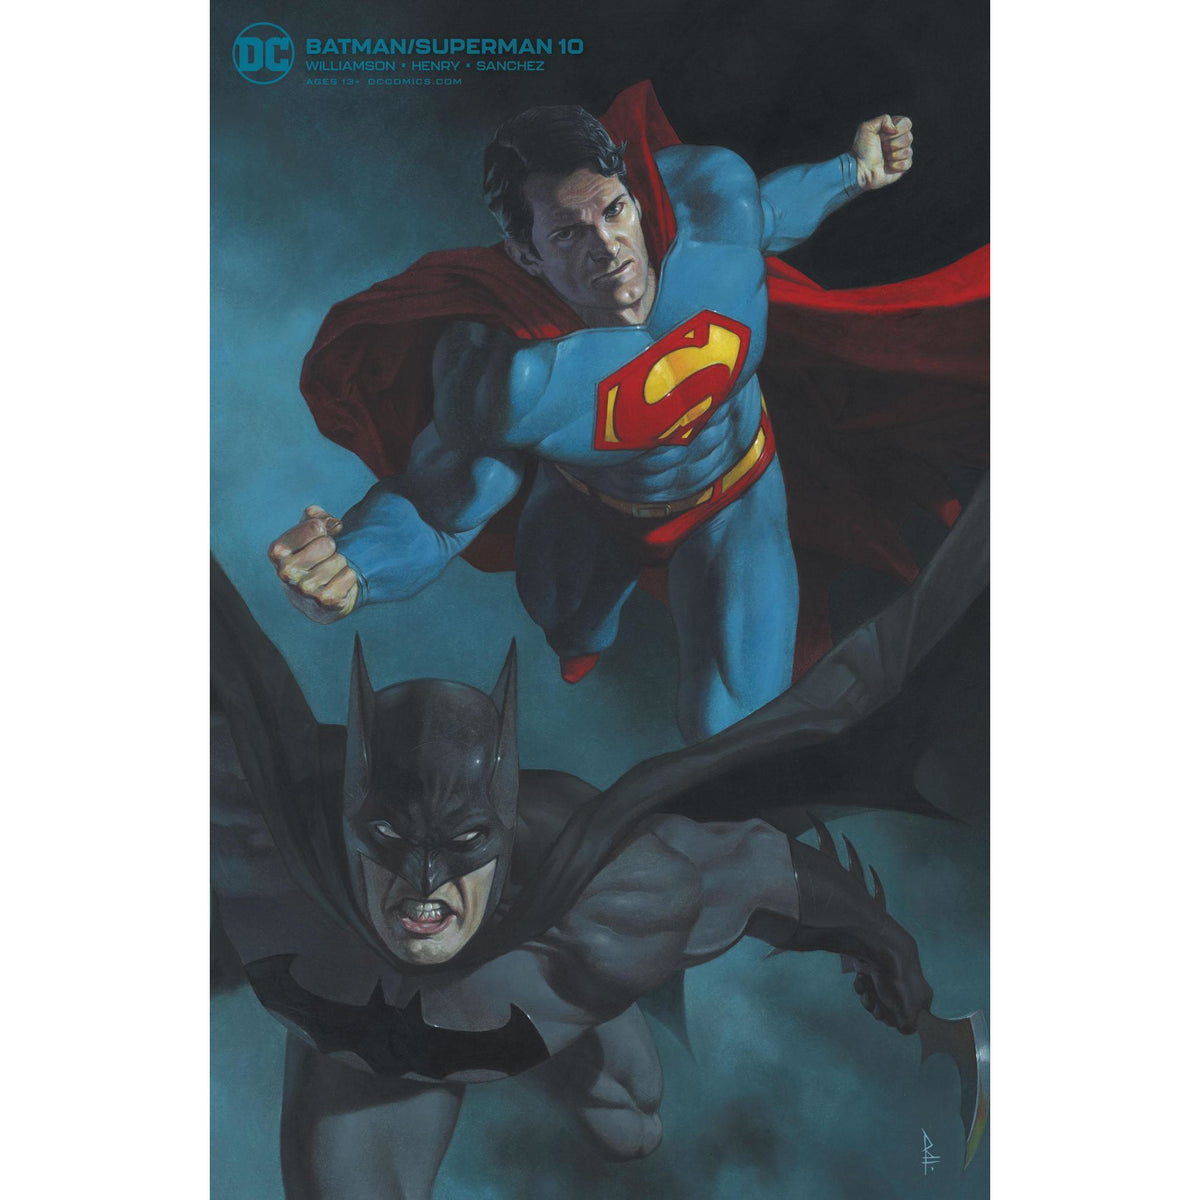 BATMAN SUPERMAN #10 CARD STOCK FEDERICI VARIANT COVER